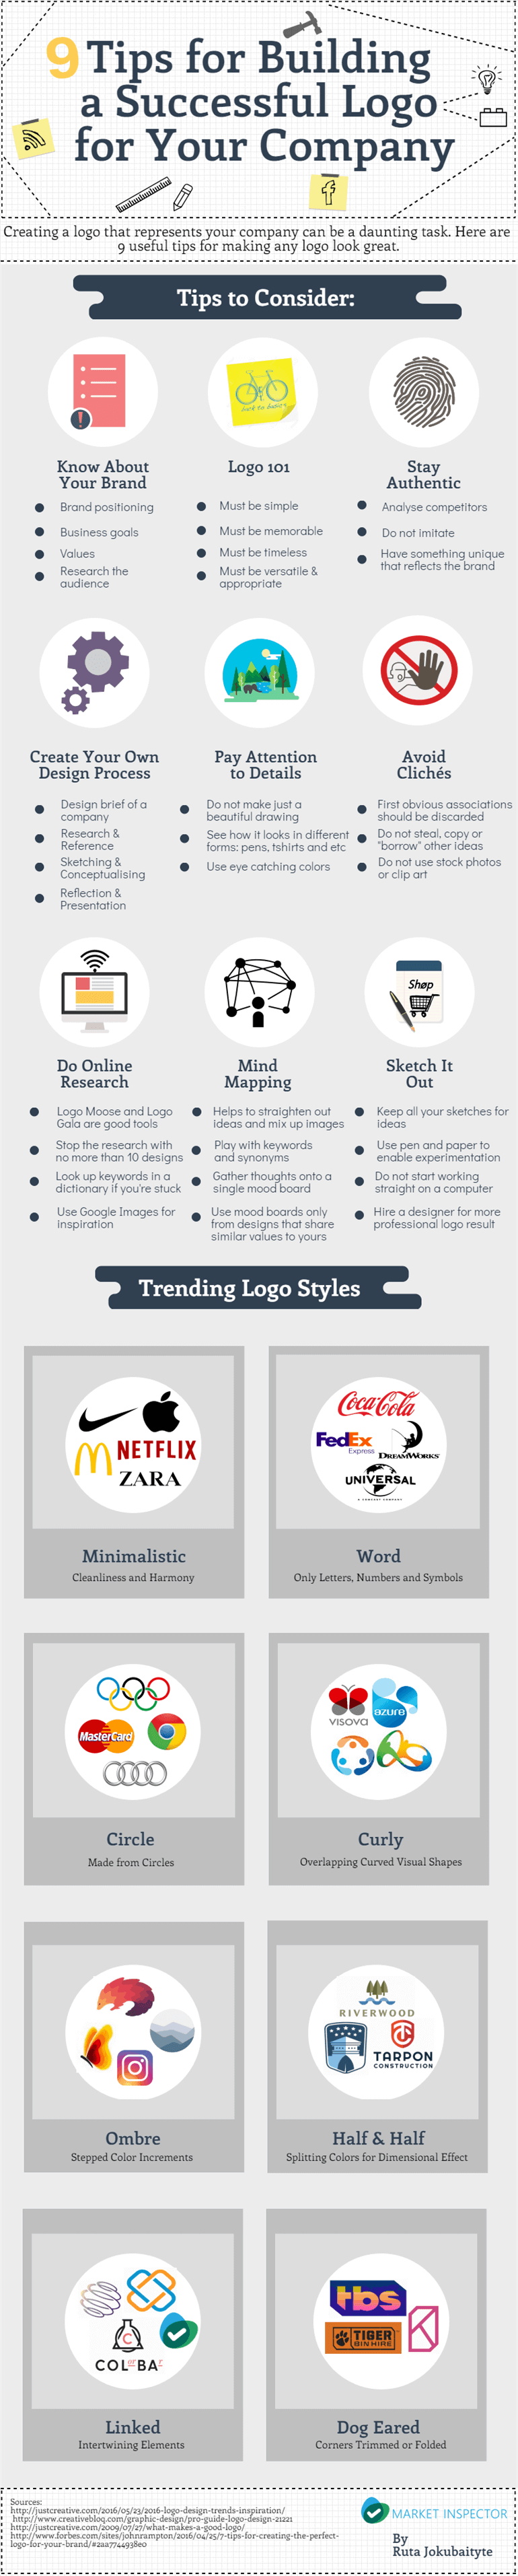 simple tips for building a successful company logo market successful company logo